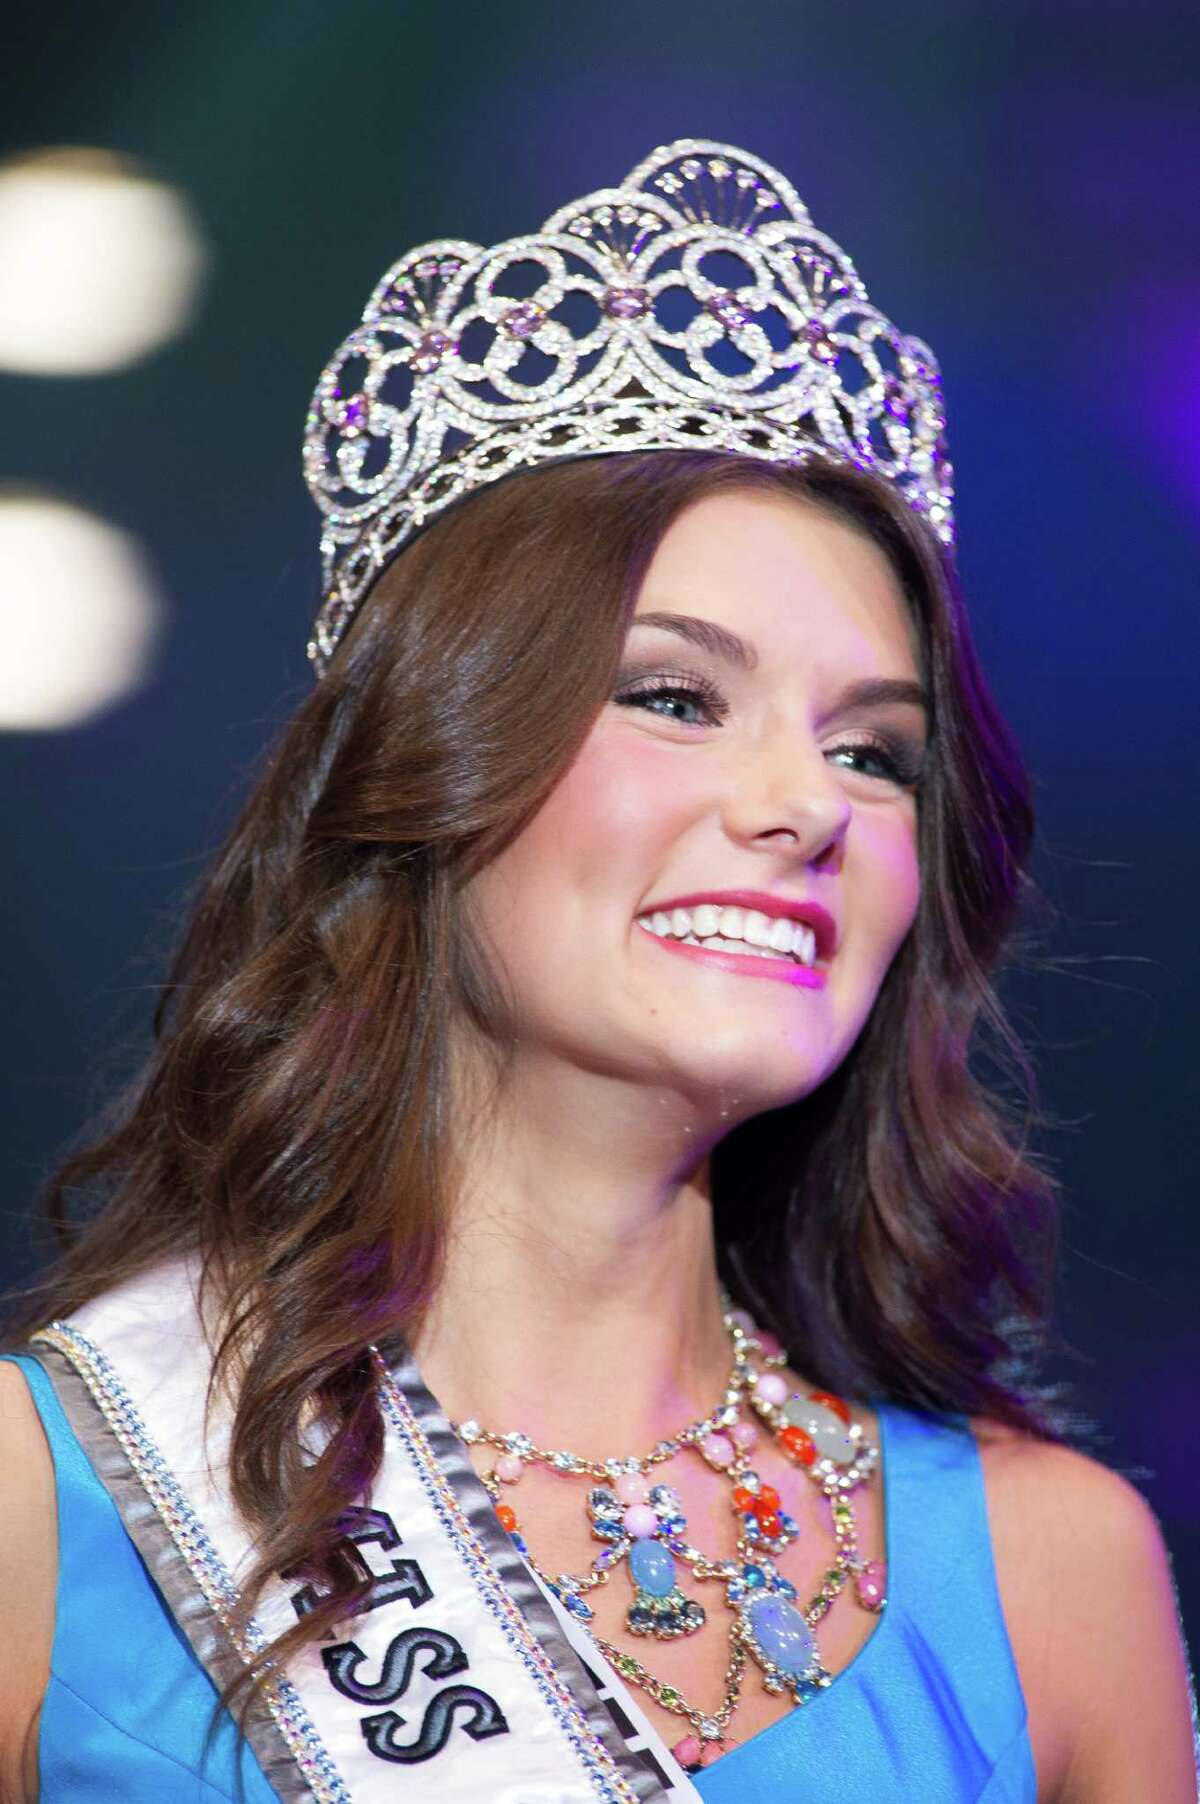 K. Lee Graham, Miss South Carolina TEEN USA 2014, is crowned Miss Teen USA 2014. She celebrates on stage after the crowning from Atlantis, Paradise Island resort in The Bahamas on Saturday, August 2, 2014. HO/ Miss Universe L.P., LLLP